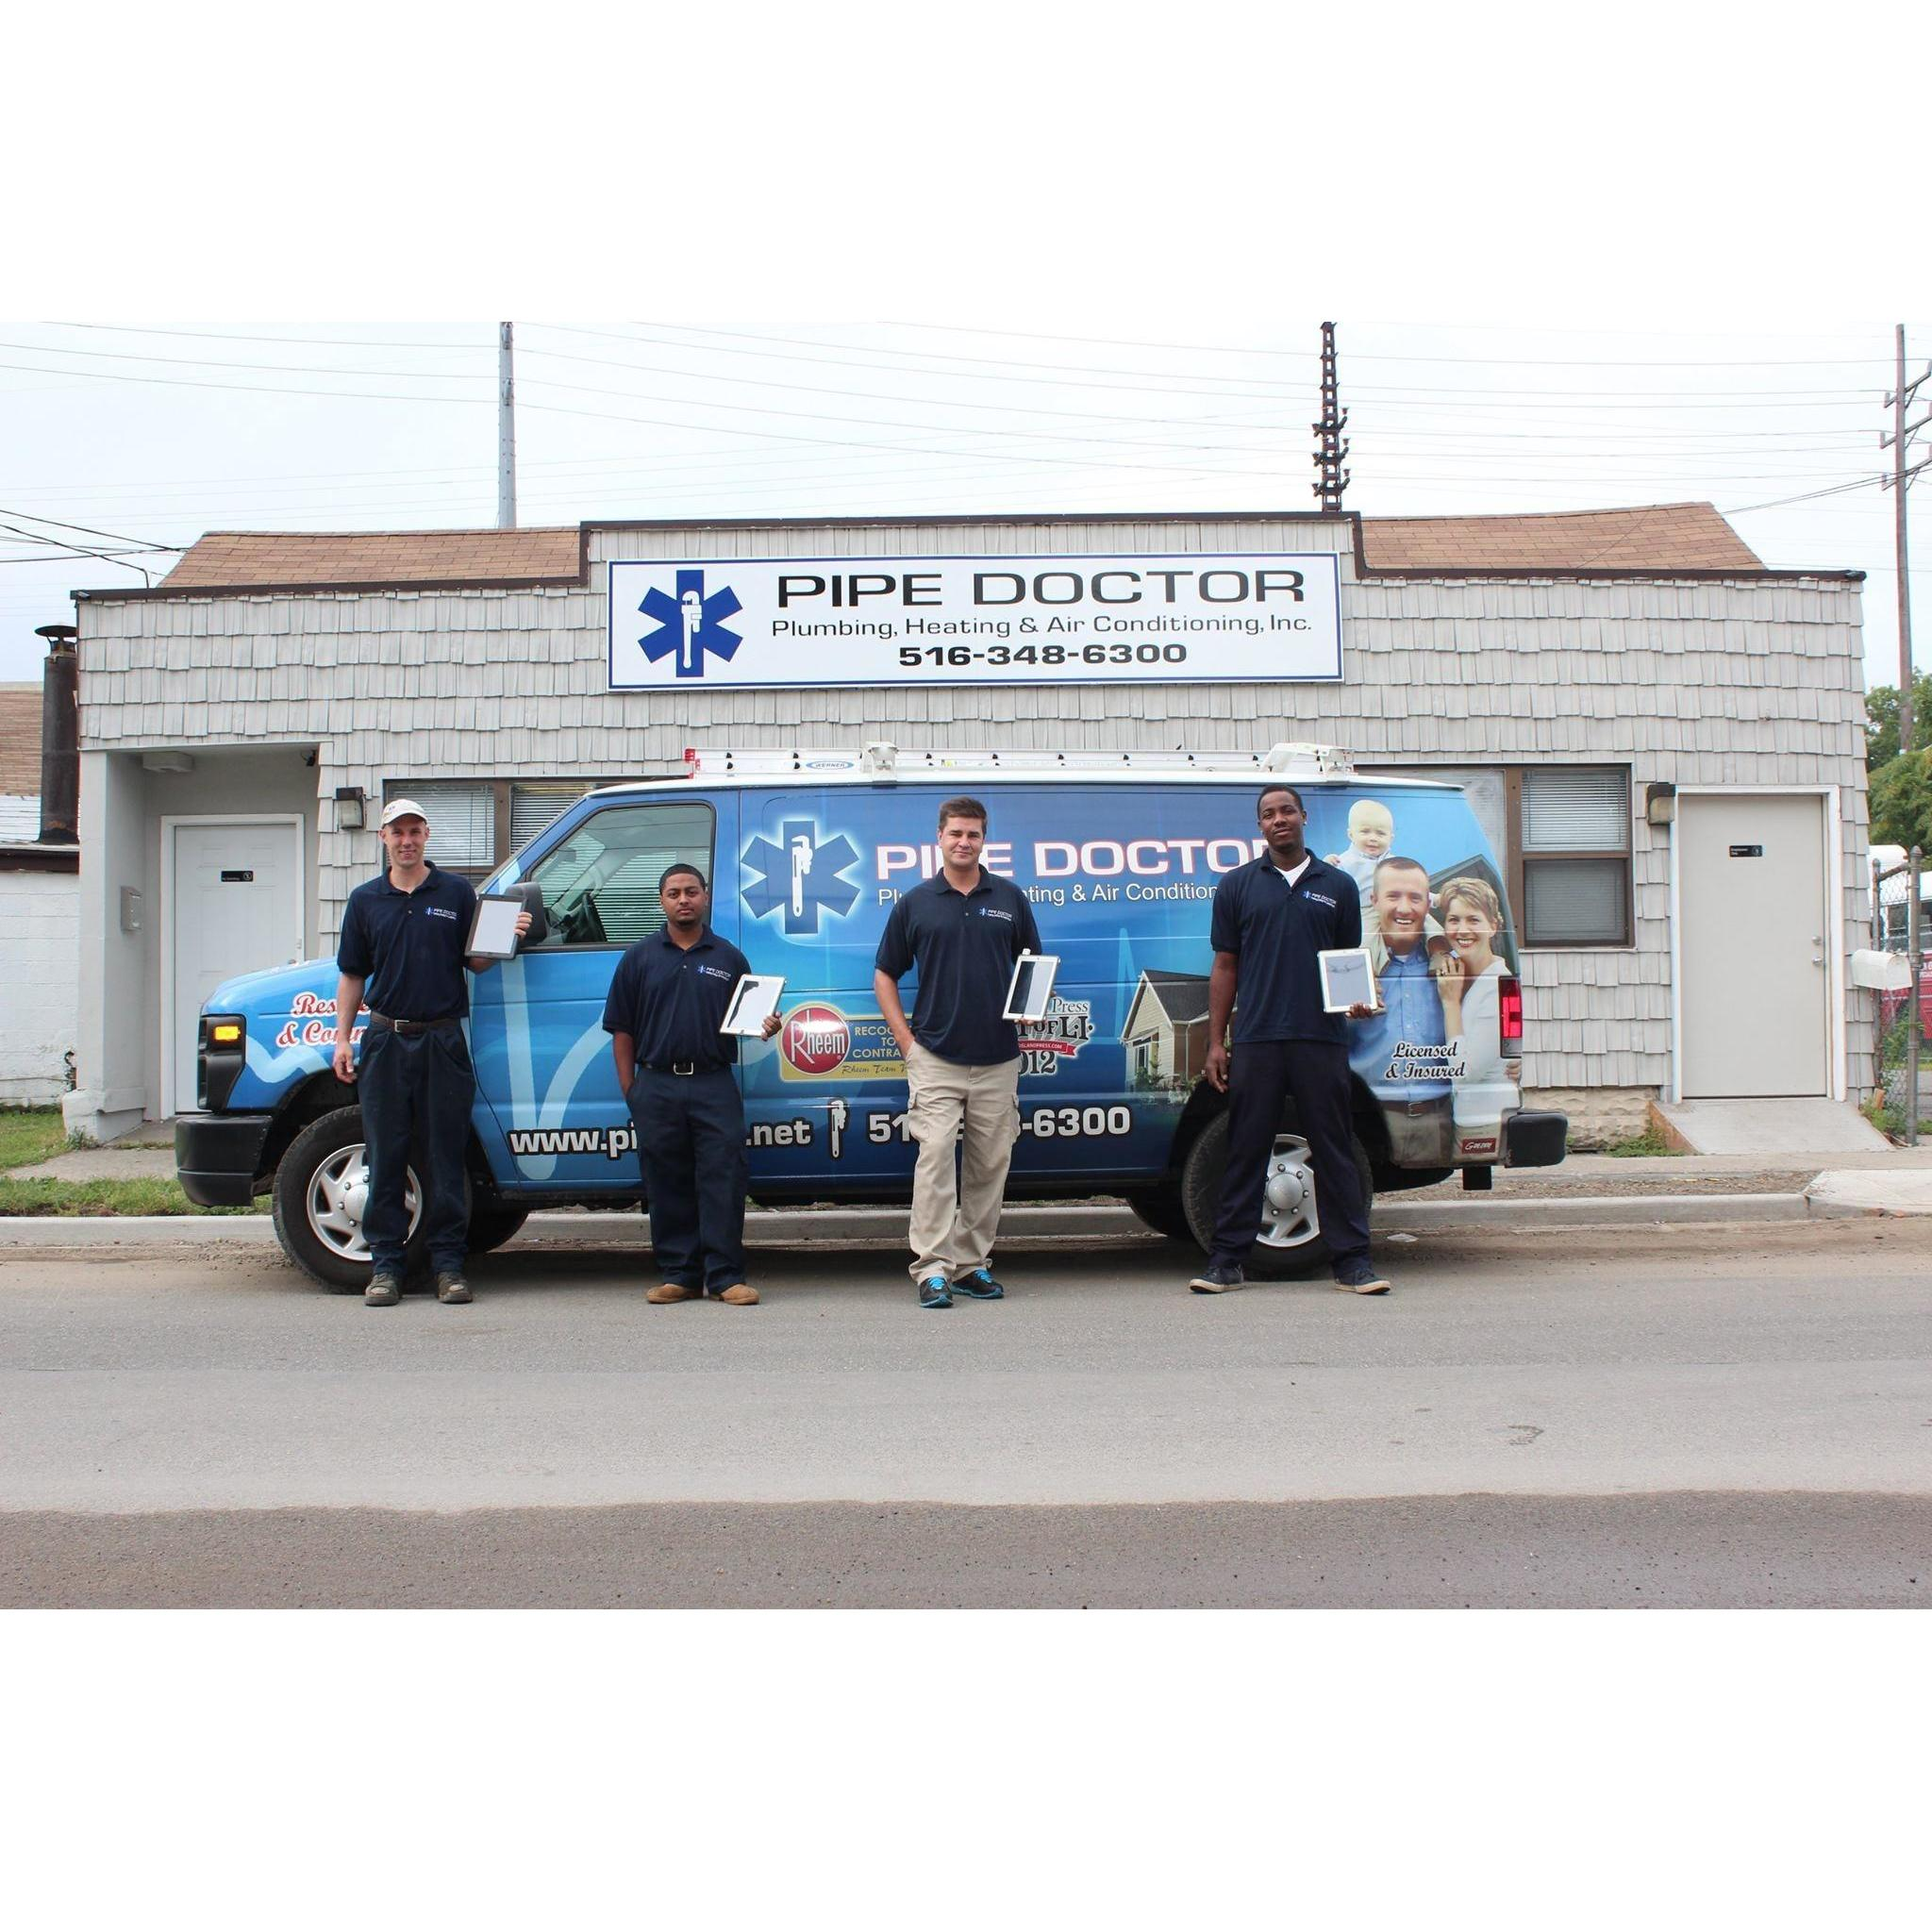 Pipe Doctor Plumbing, Heating & Air Conditioning, Inc. image 16